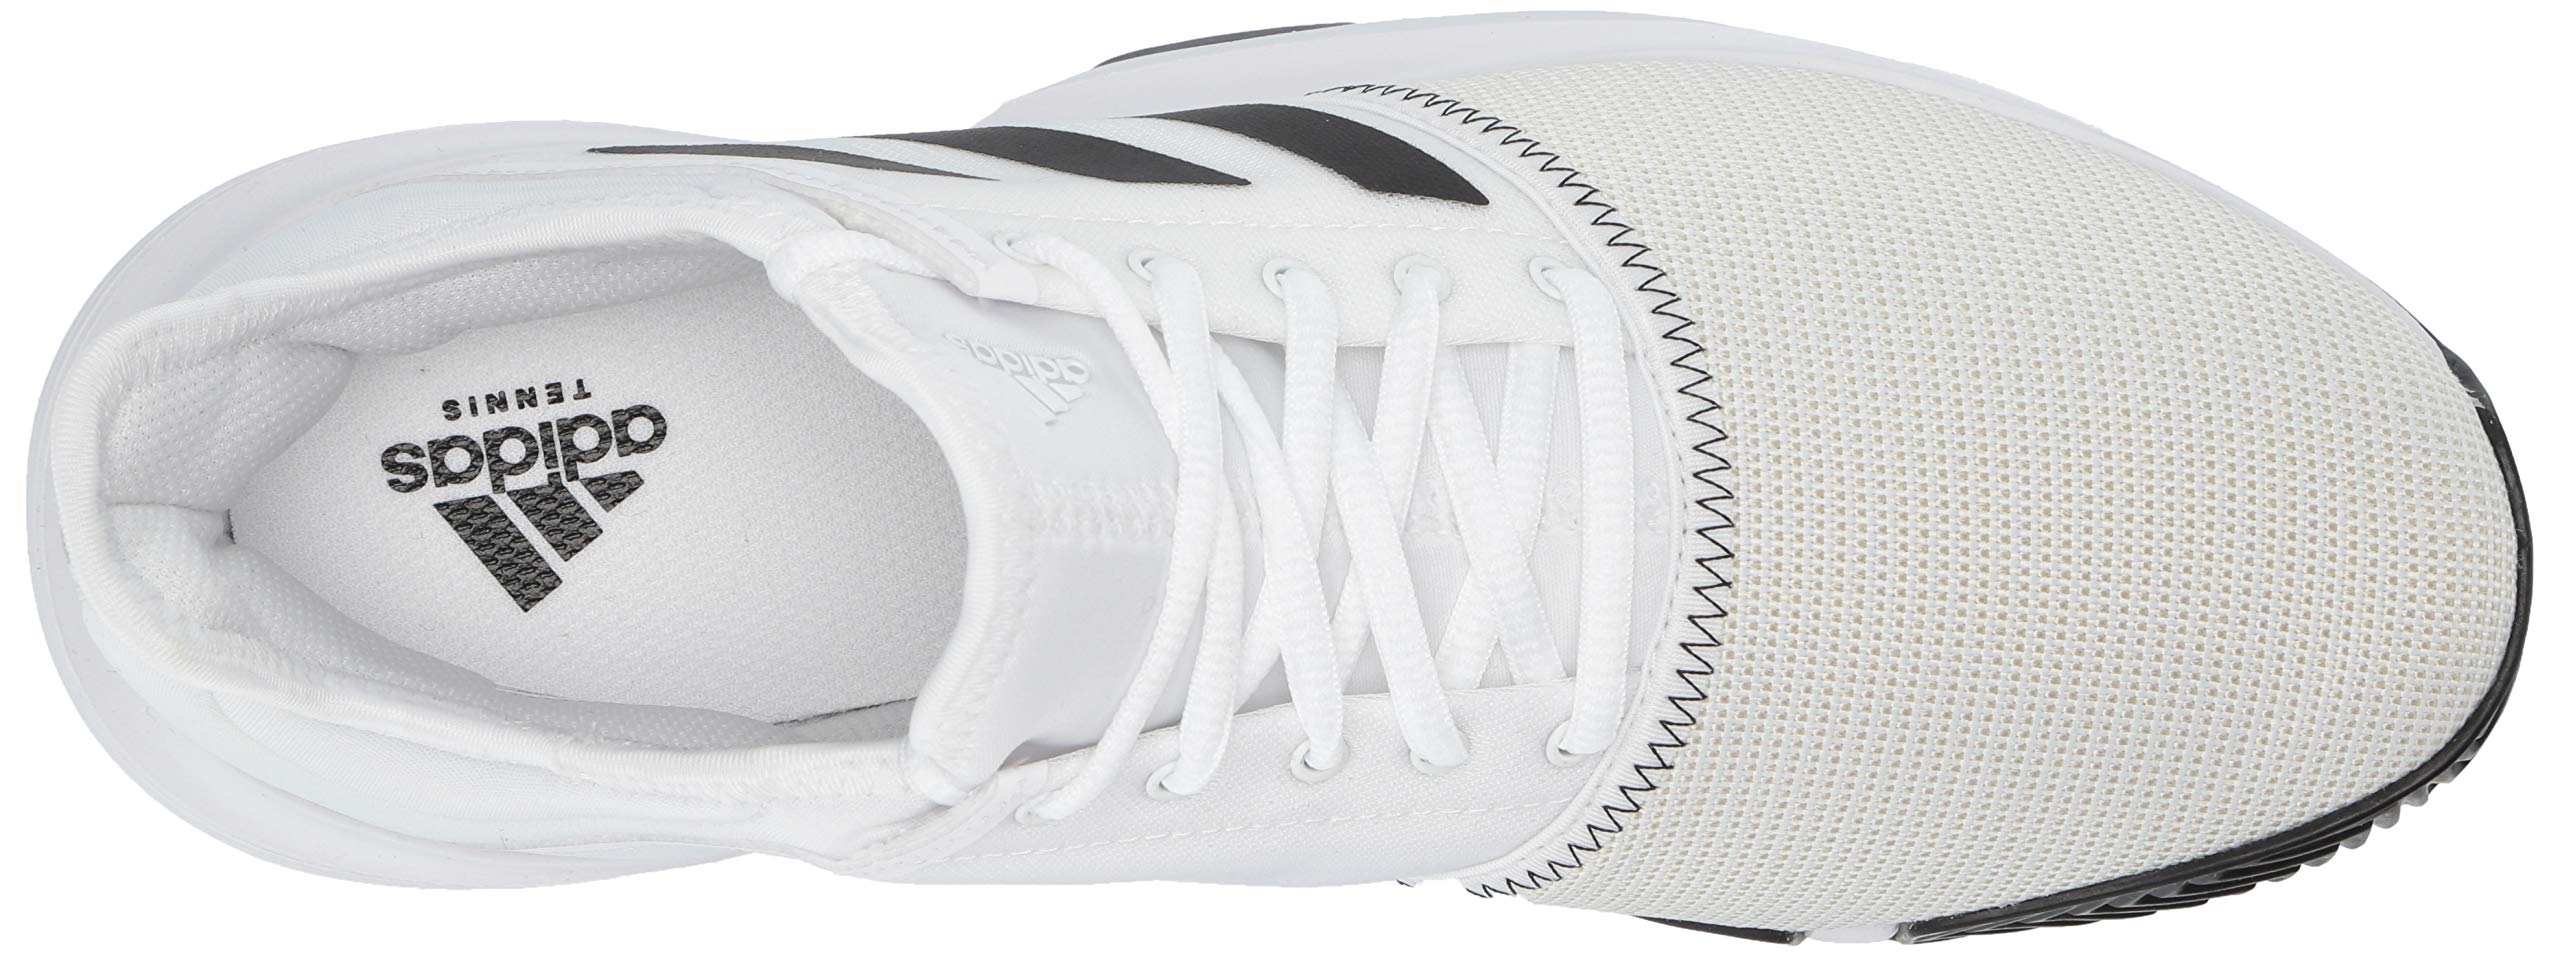 adidas Men's Gamecourt, White/Black/Grey 6.5 M US by adidas (Image #8)